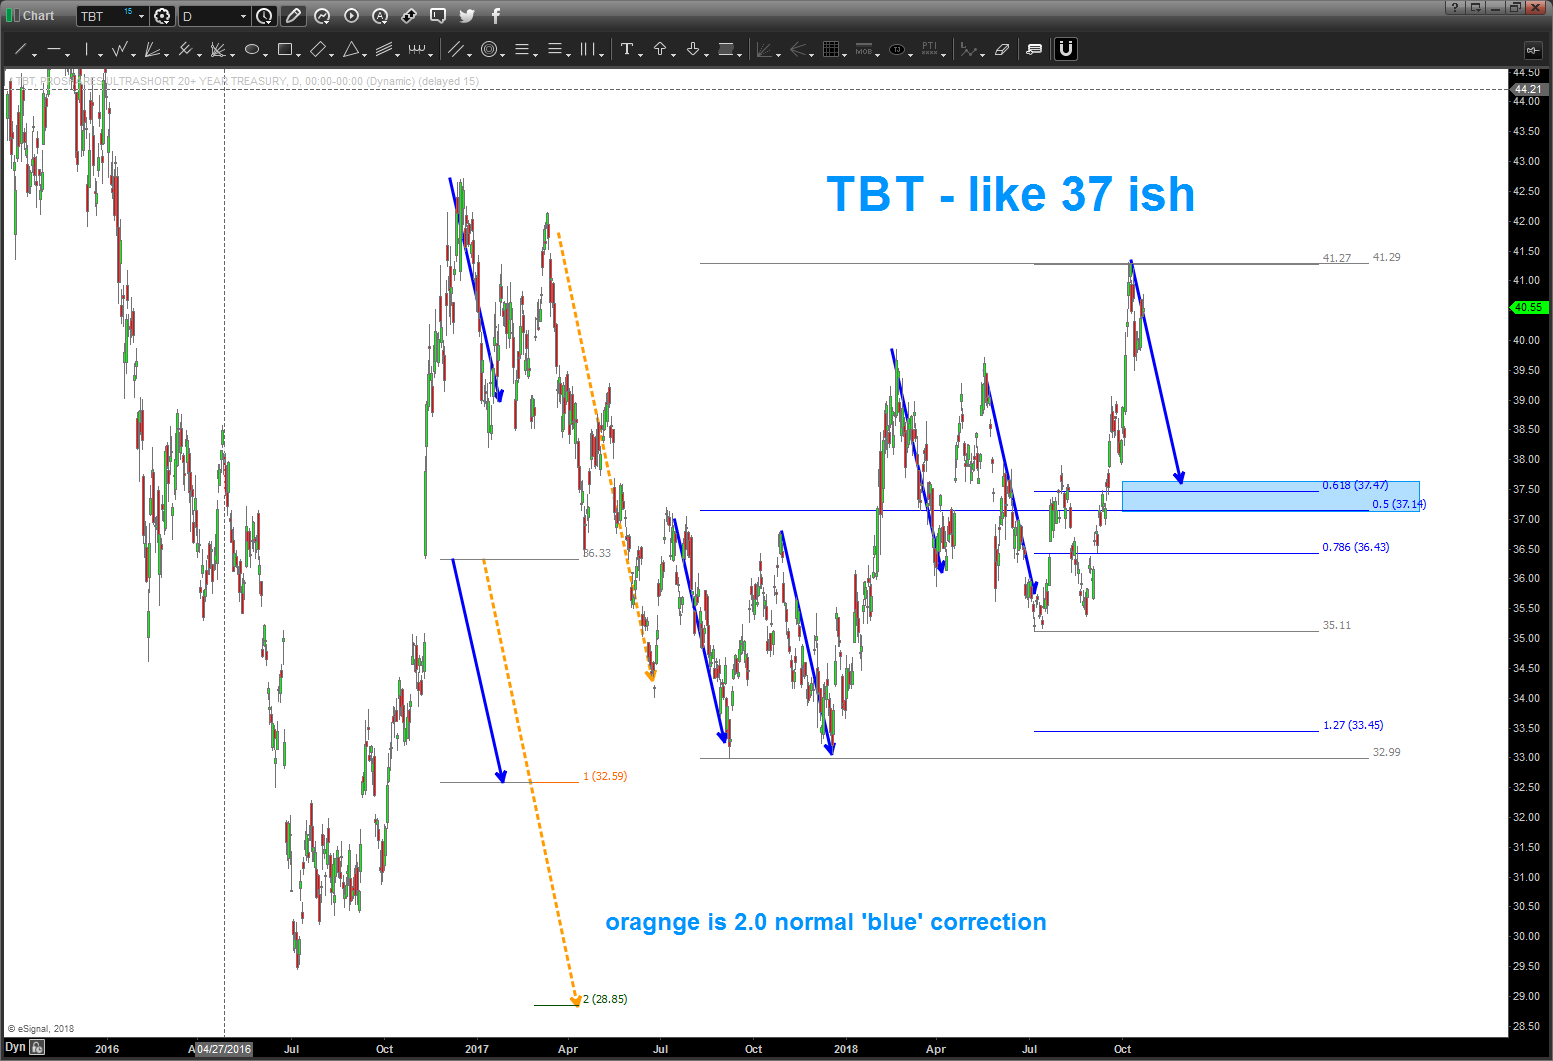 tbt short treasury bonds etf trading price analysis october support target